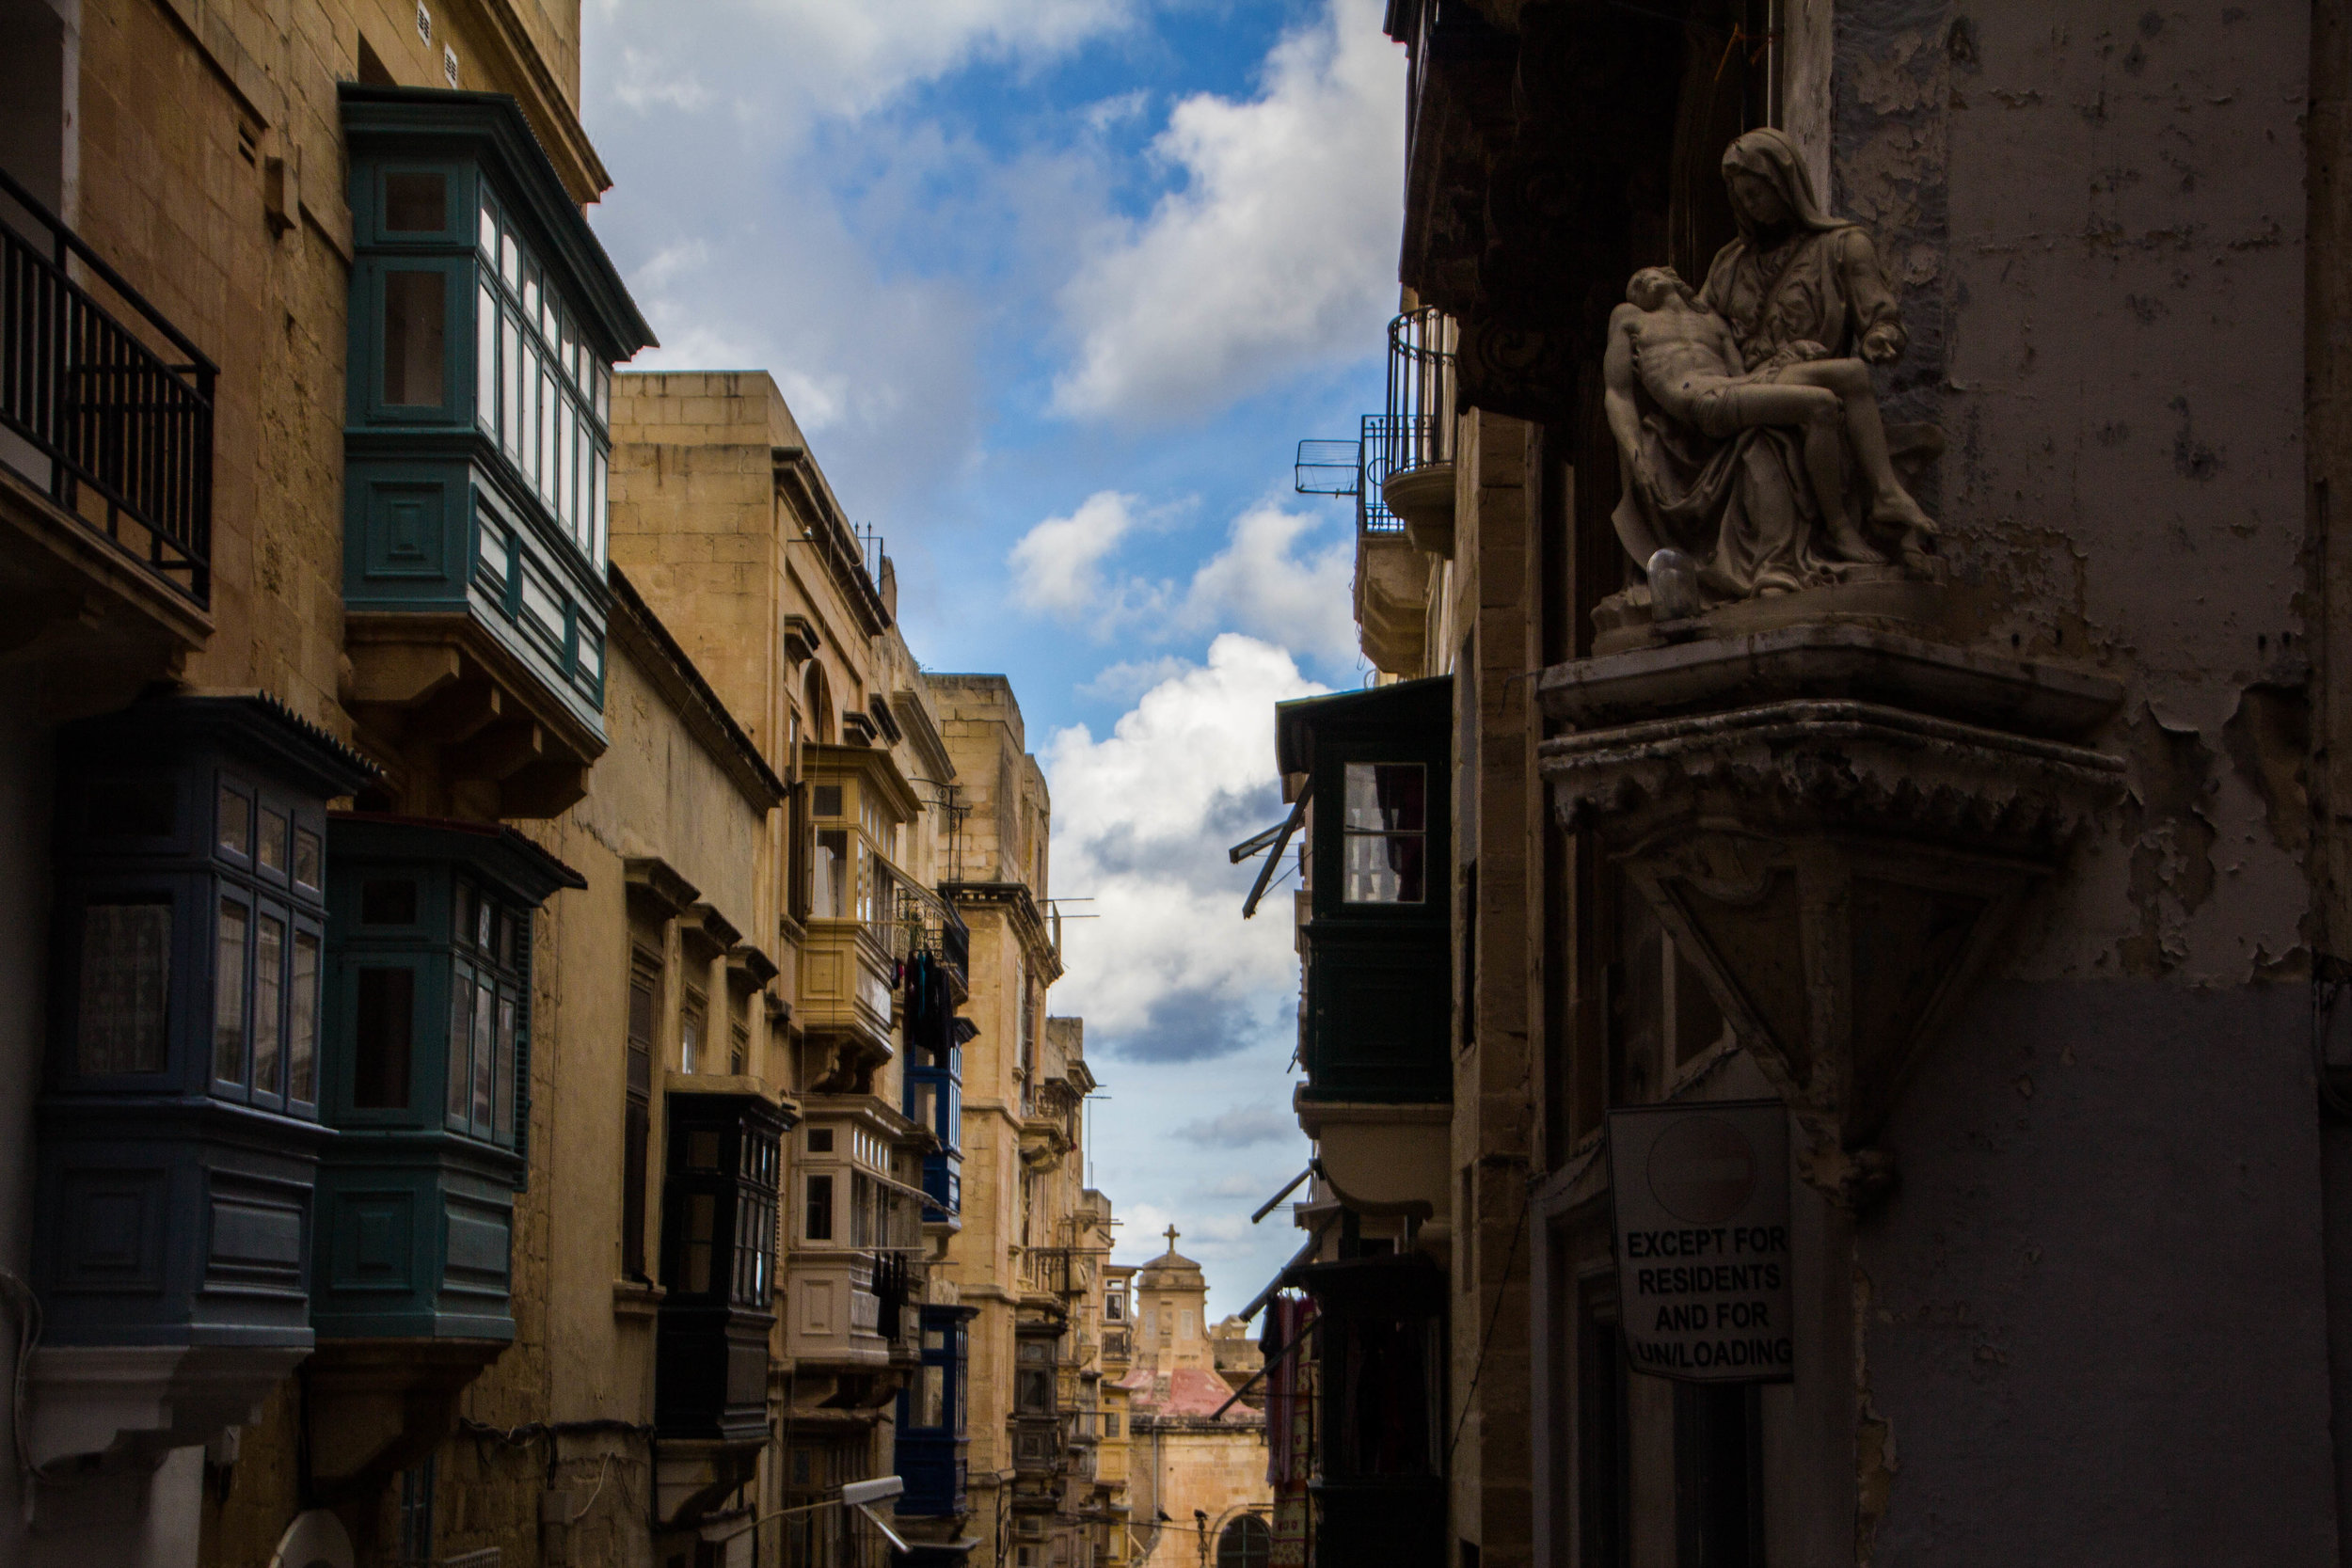 valletta-malta-clouds-rain-streets-photography-26.jpg